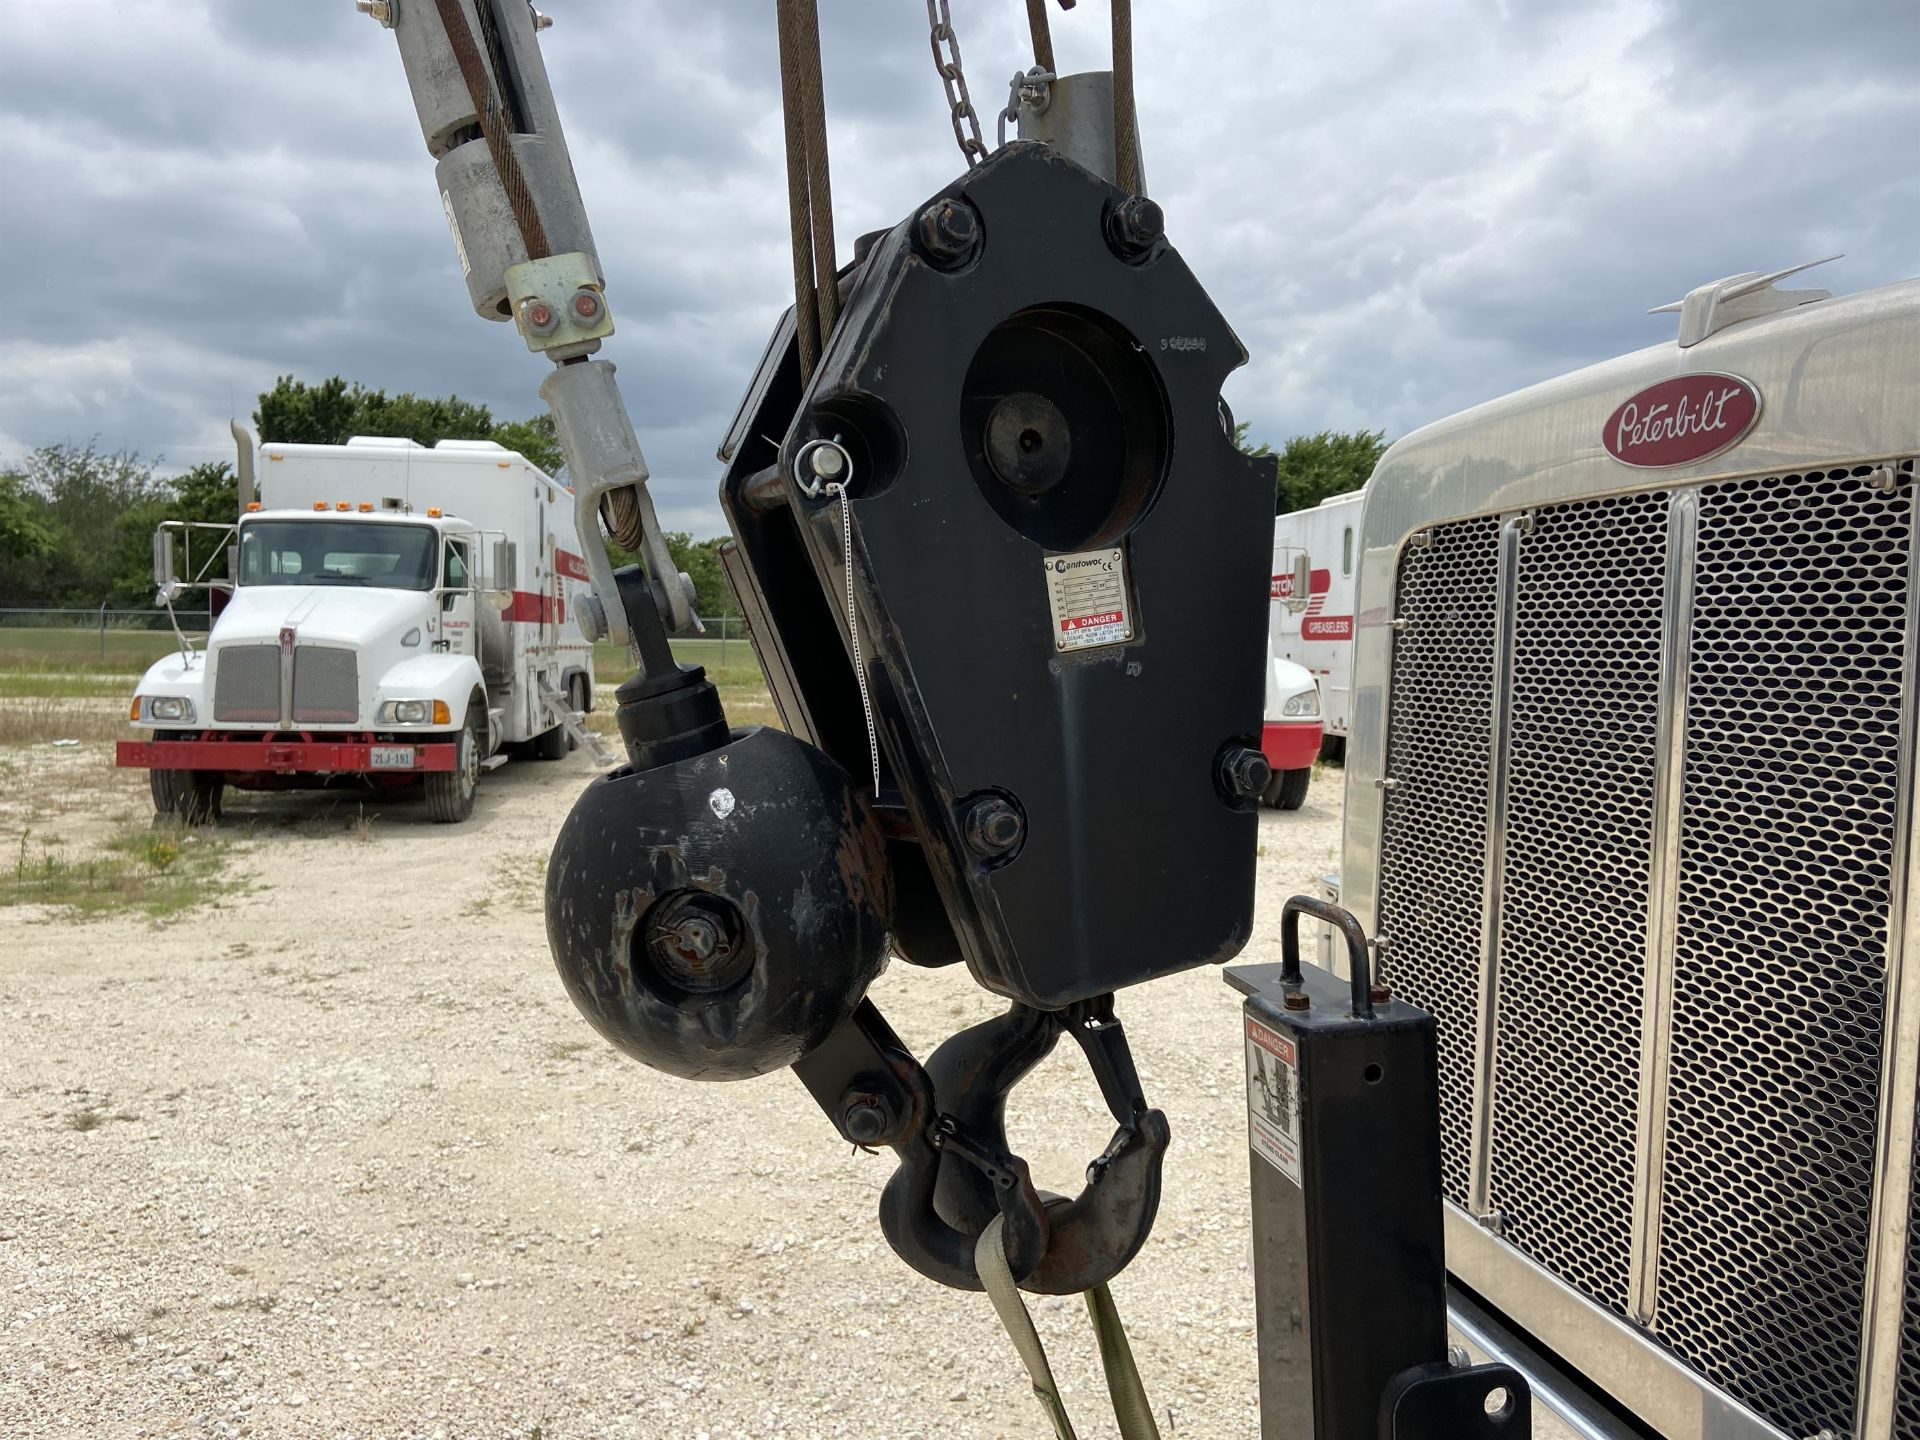 2014 NATIONAL NBT 40 Mobile Swing Truck Crane, s/n 299977, 3,266 Miles, 81.5 Hours - Image 6 of 35